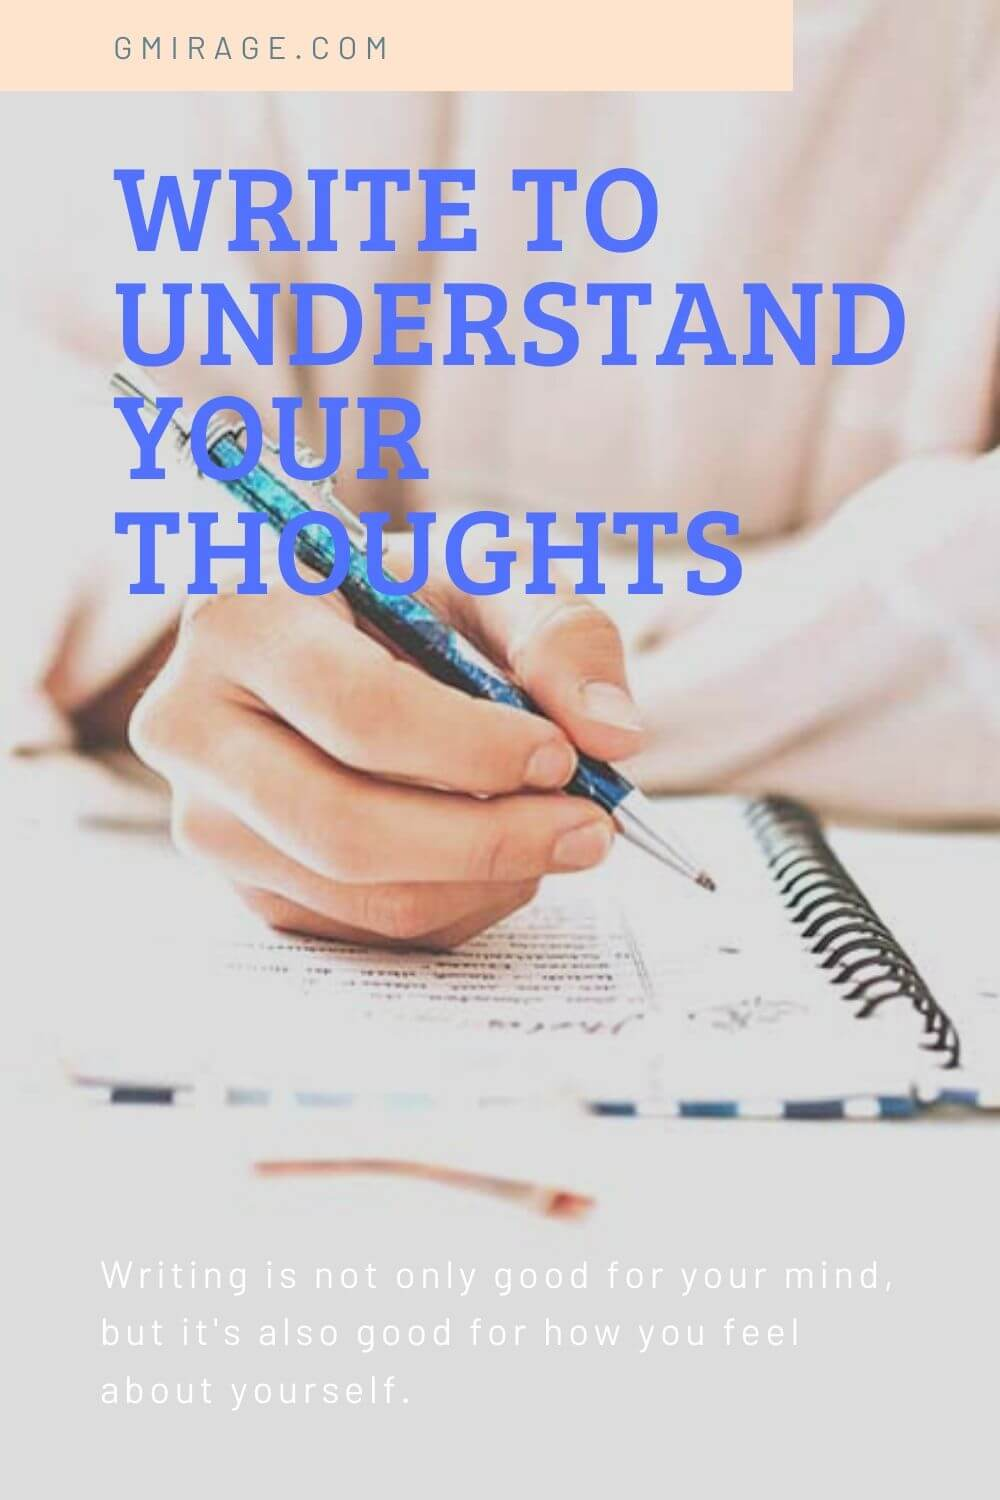 Write to understand your thoughts, it might be a thing of the not-so-distant past, but there are a lot of benefits for doing it. Writing is not only good for your mind, but for how you feel about yourself.